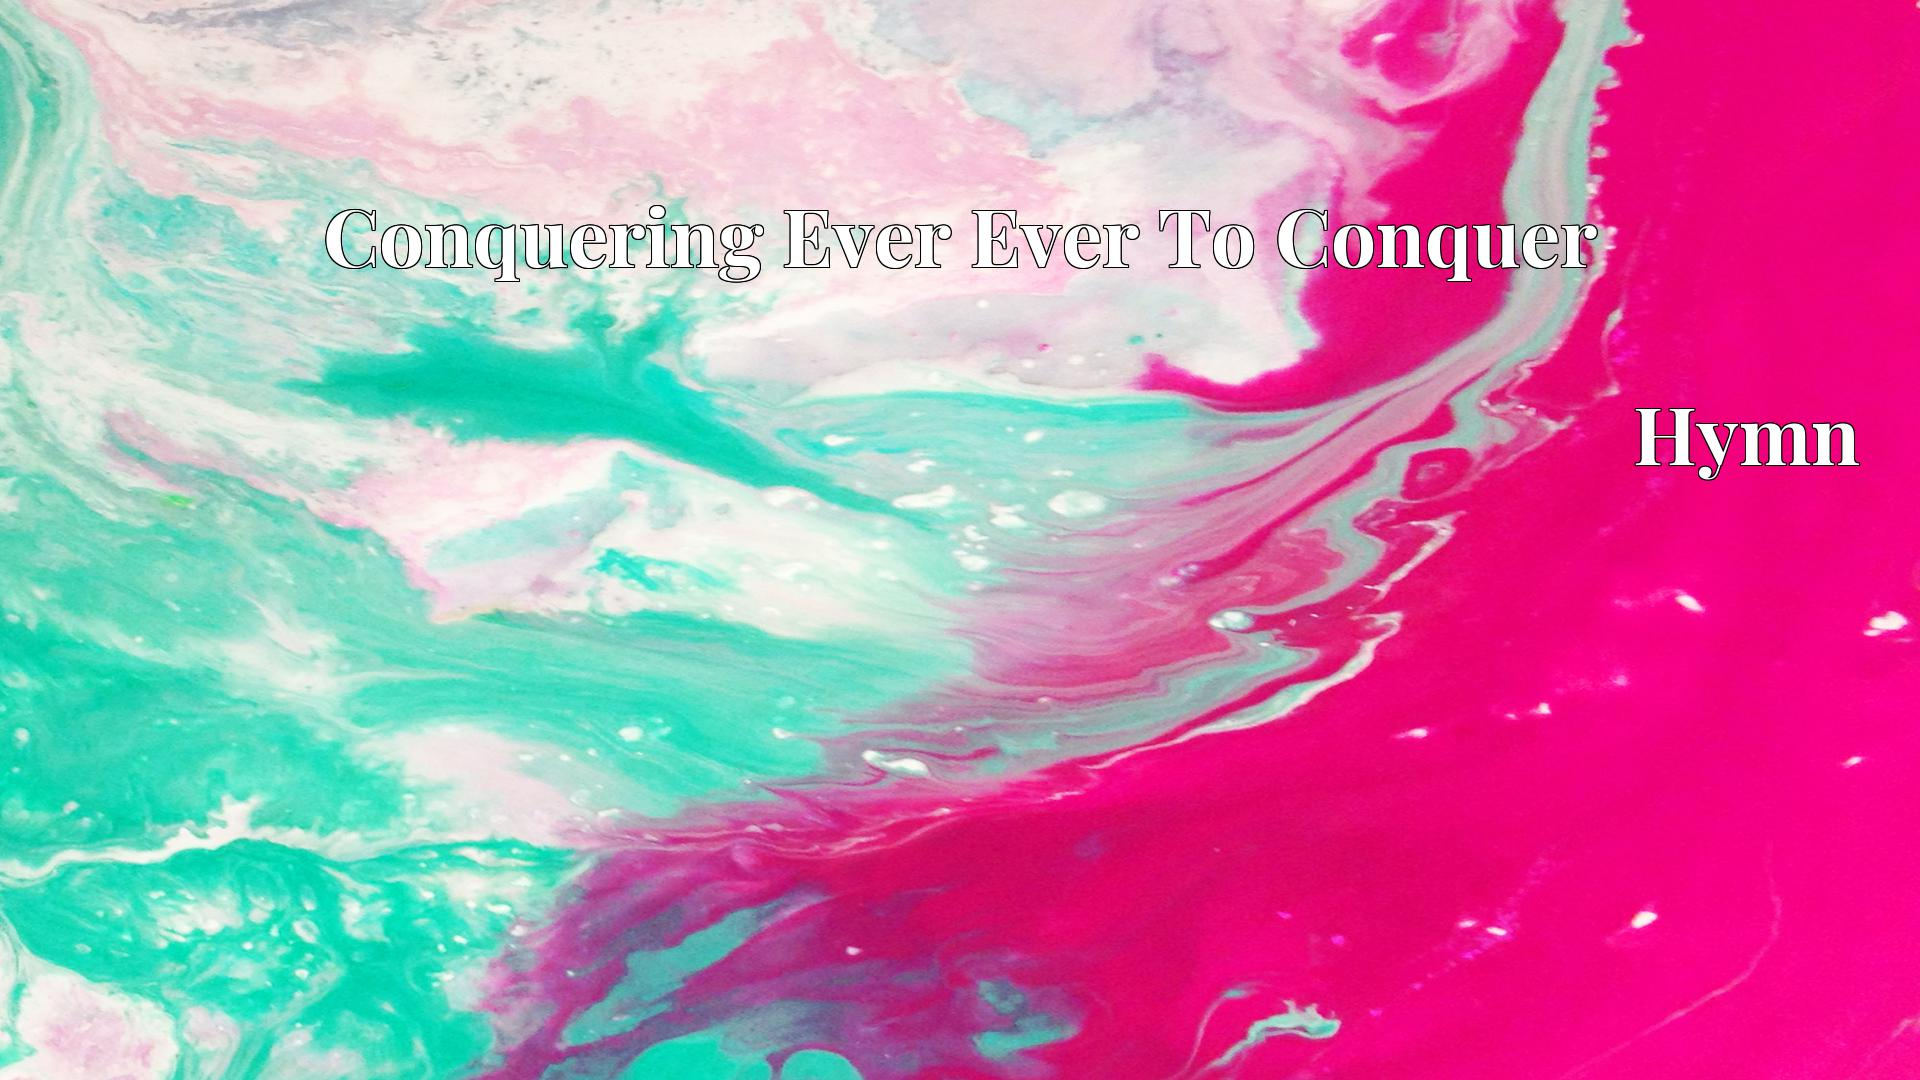 Conquering Ever Ever To Conquer - Hymn